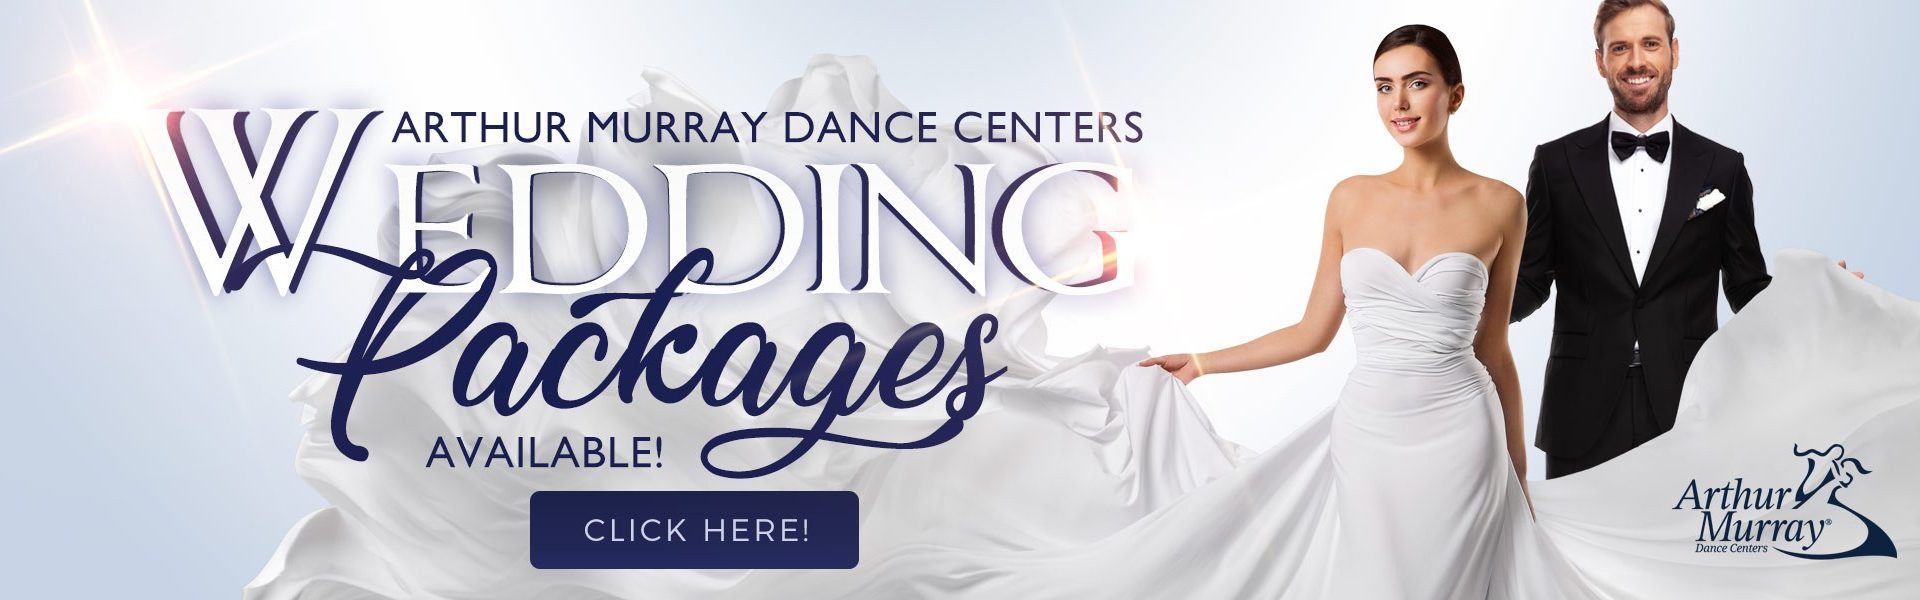 Arthur Murray Dallas Wedding Dance Lessons